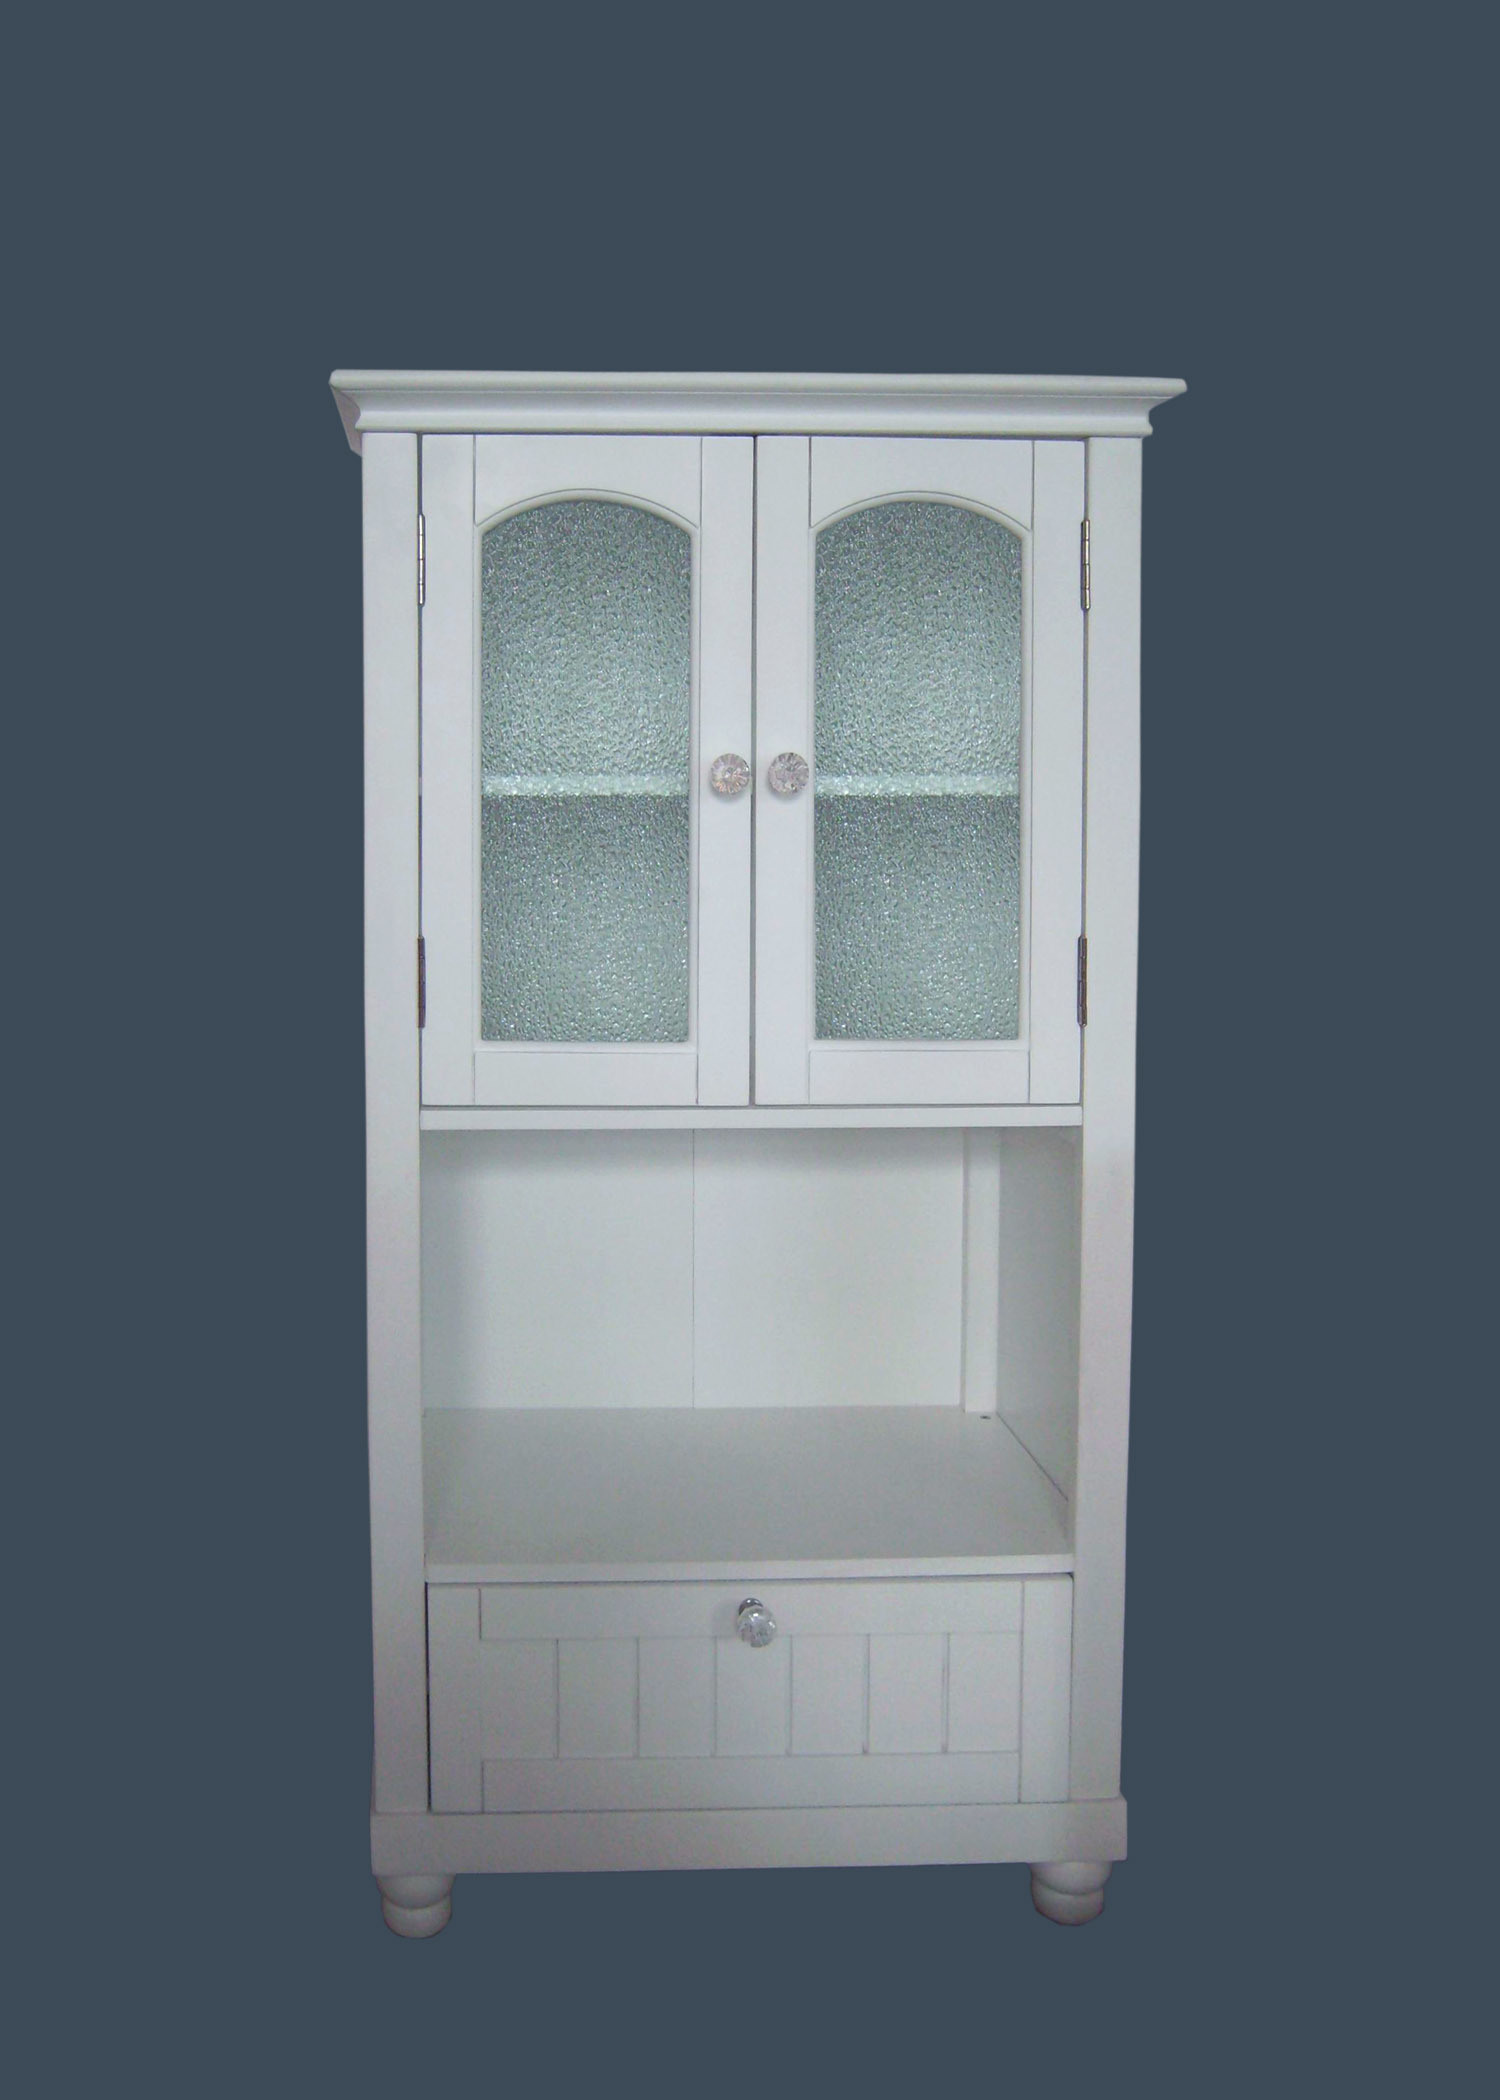 Bathroom Vanity Cabinet With Glass Doors Cabinet Doors: glass cabinet doors